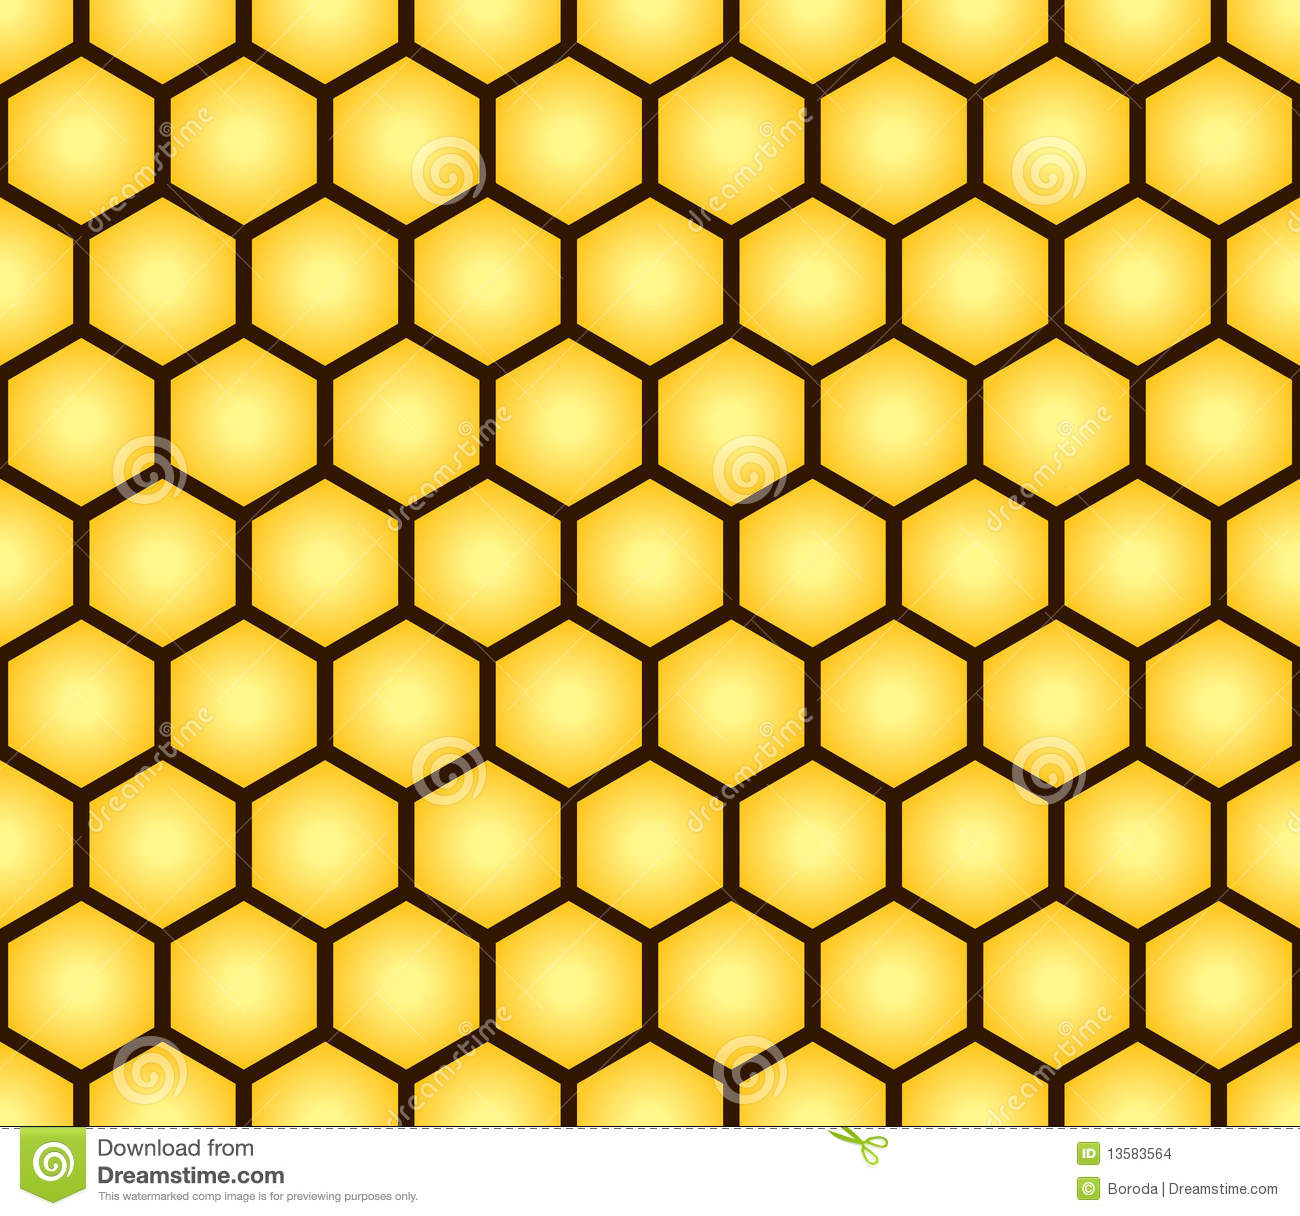 Abstract Seamless Pattern Of Honeycomb Form Stock Images - Image ...